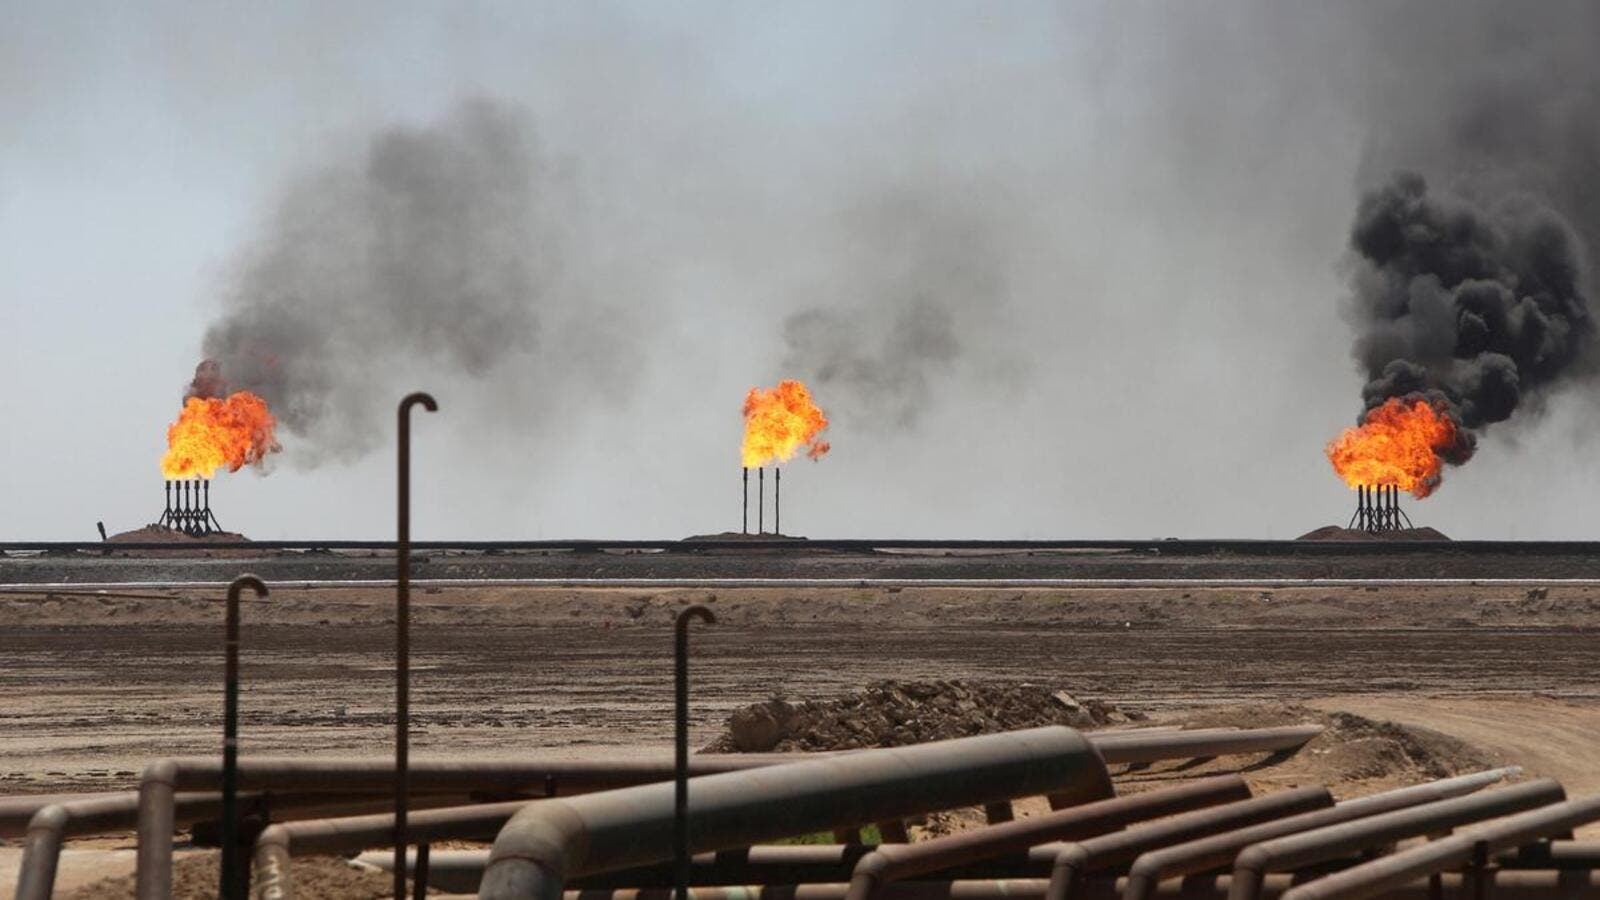 Oil prices up on US-Iran tensions (Twitter)